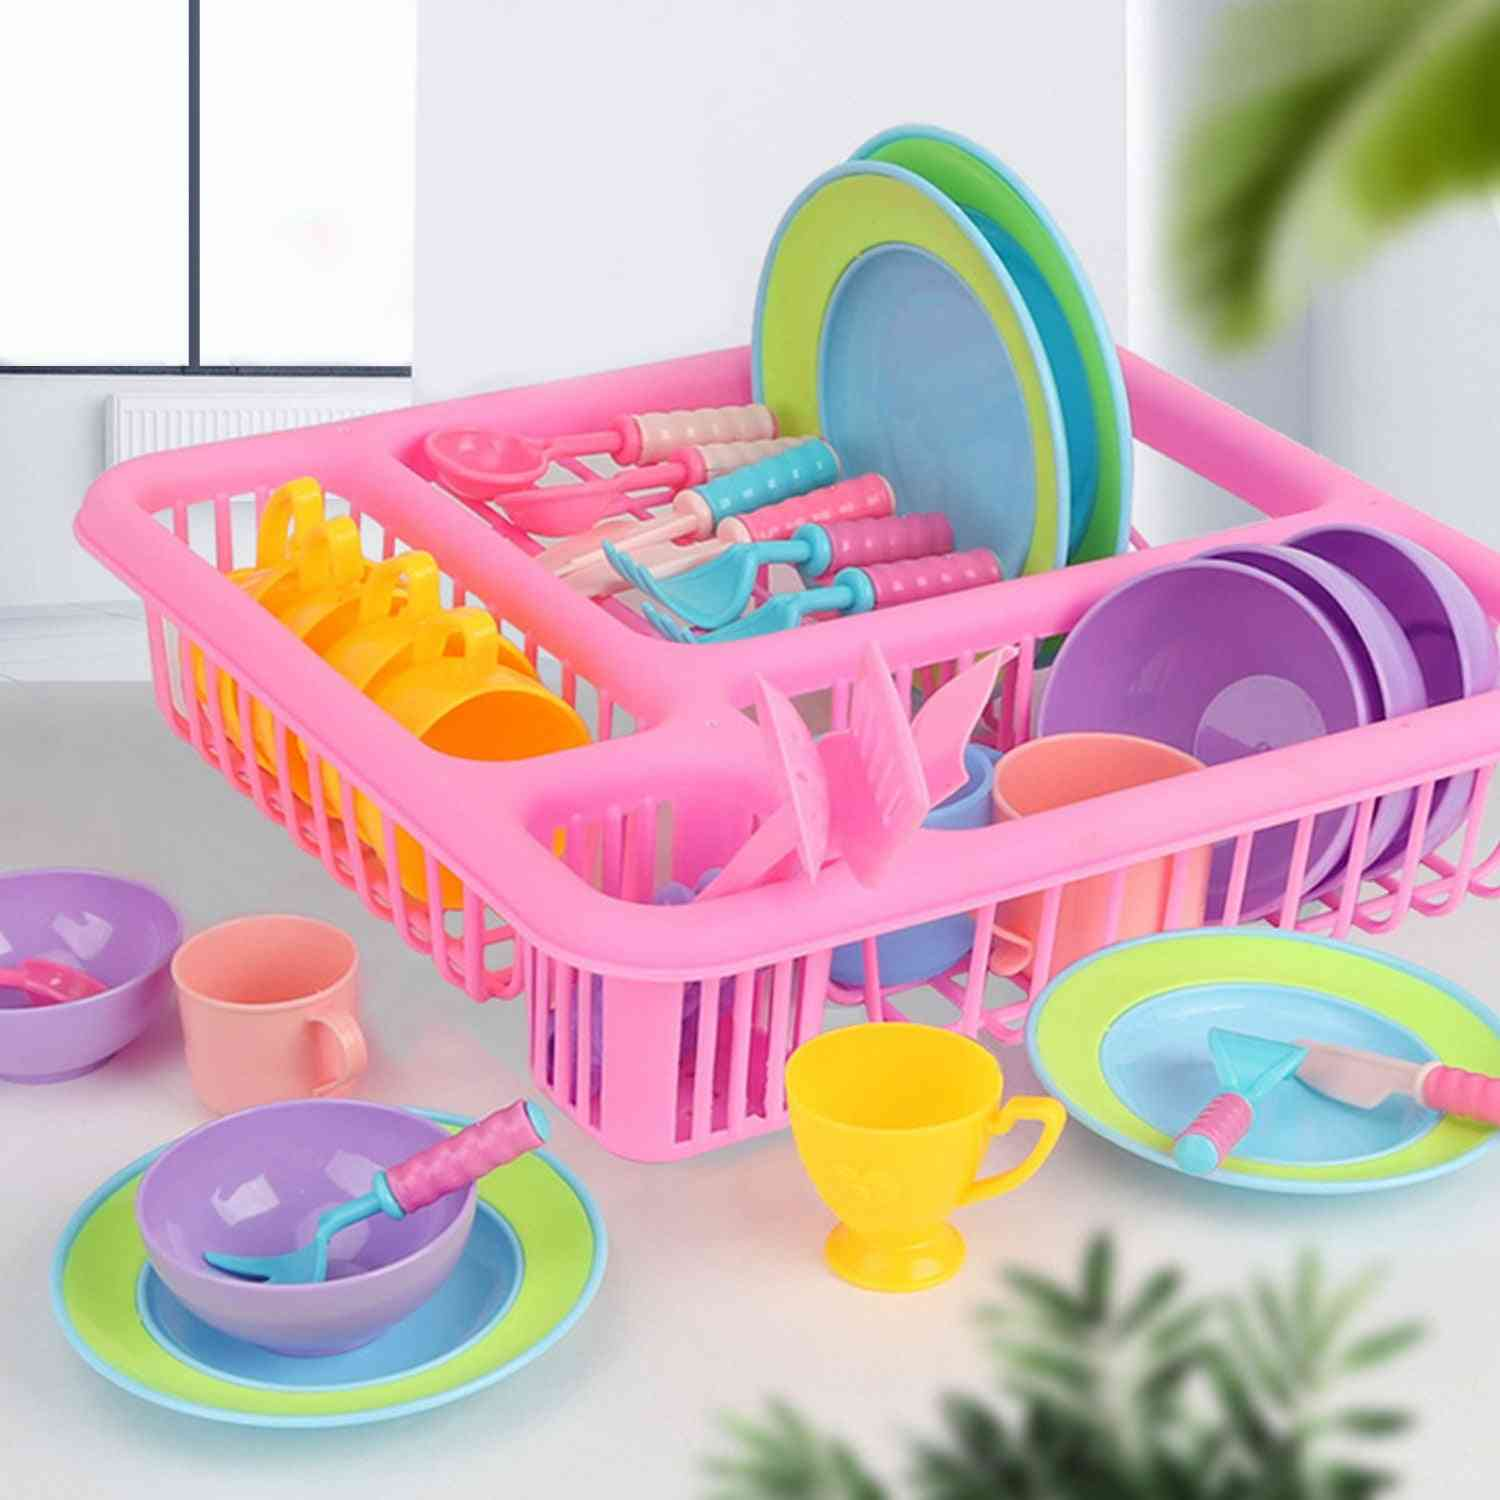 Kid's Pretend Dishes Set For Role Playing